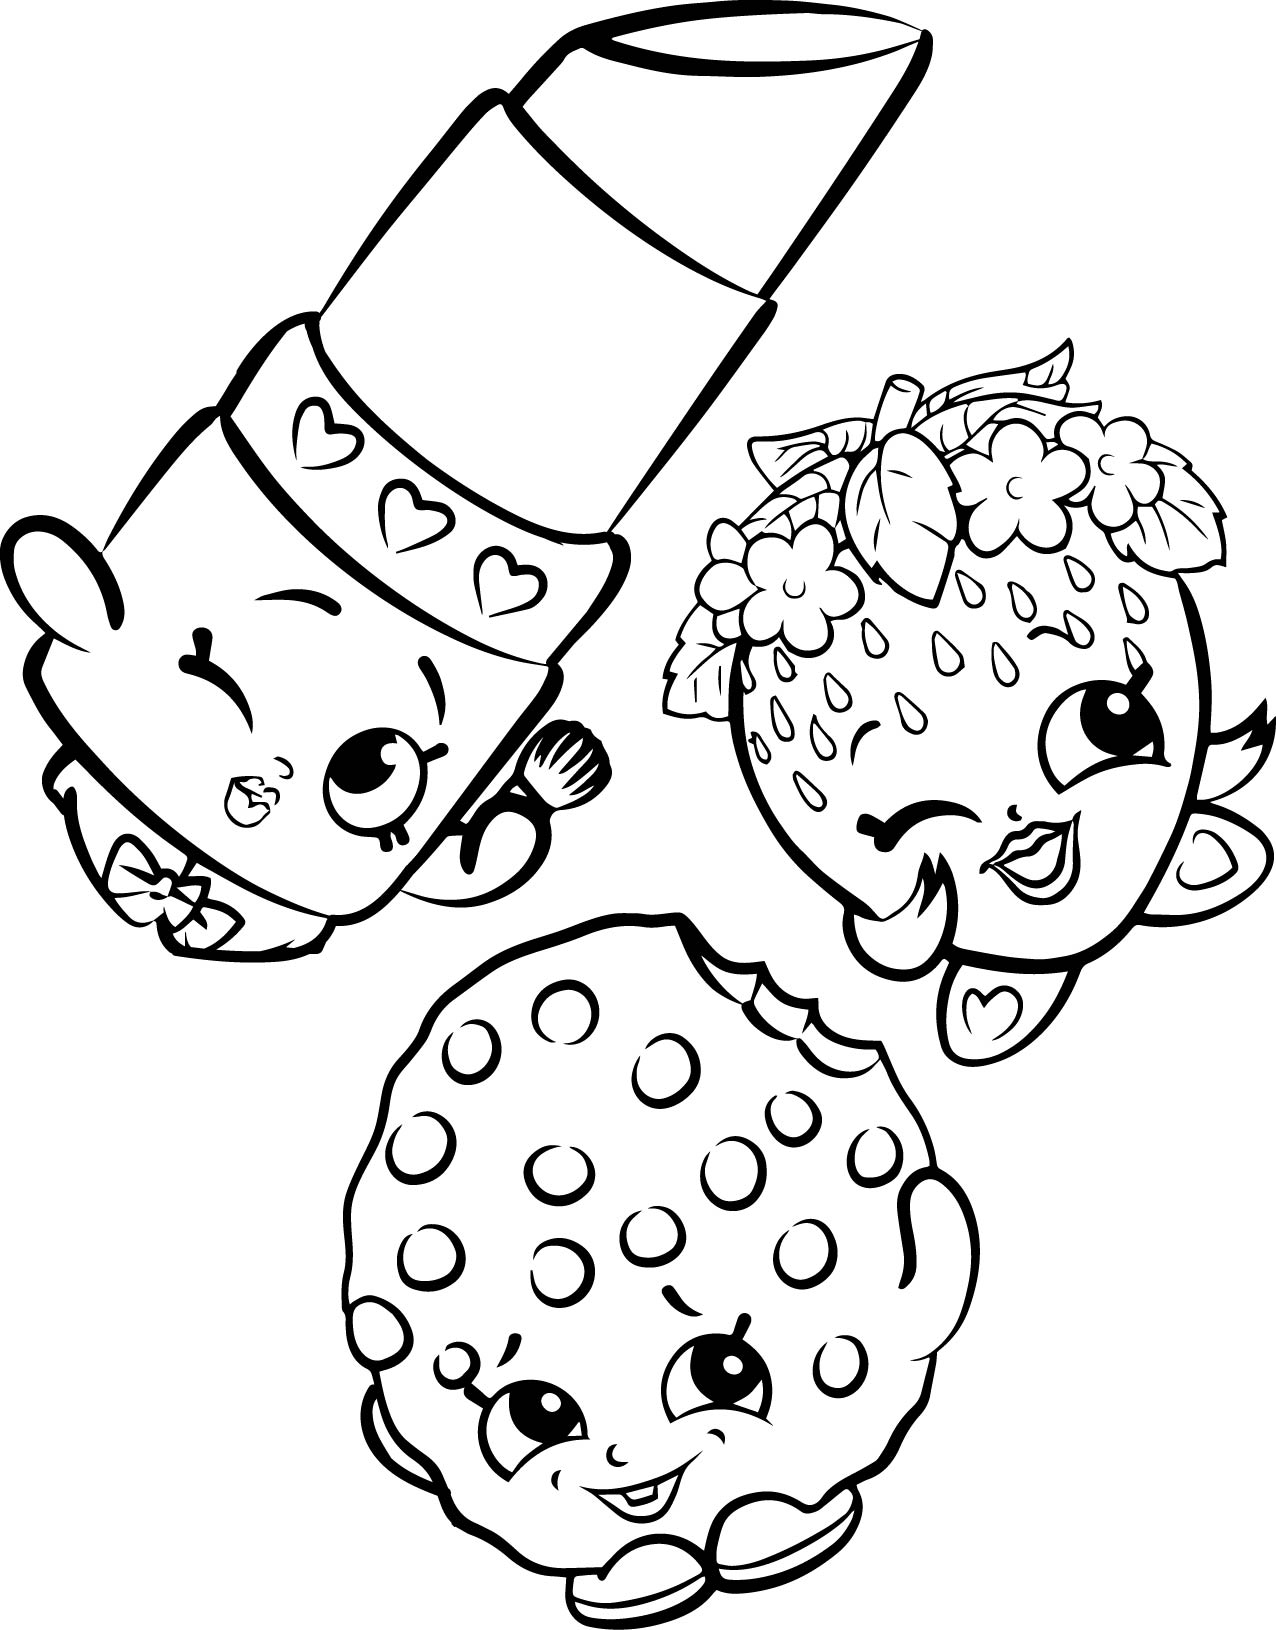 image regarding Shopkins Coloring Pages Printable named Shopkins Coloring Internet pages - Simplest Coloring Web pages For Children